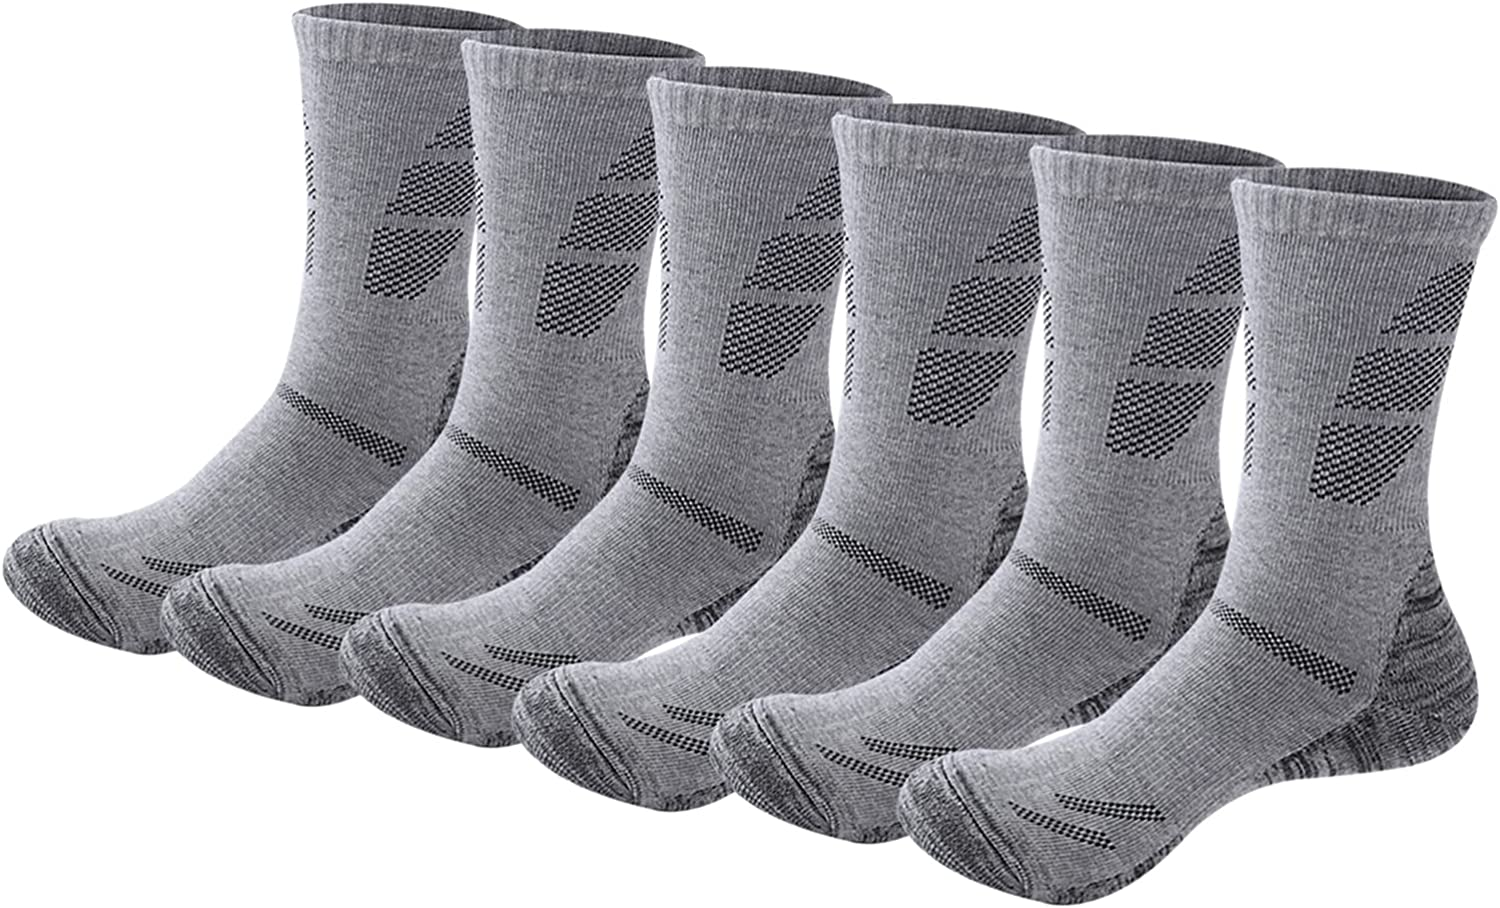 Merino Wool Men's Challenge the Outstanding lowest price Hiking Sock Moisture Athletic Cushion Wicking